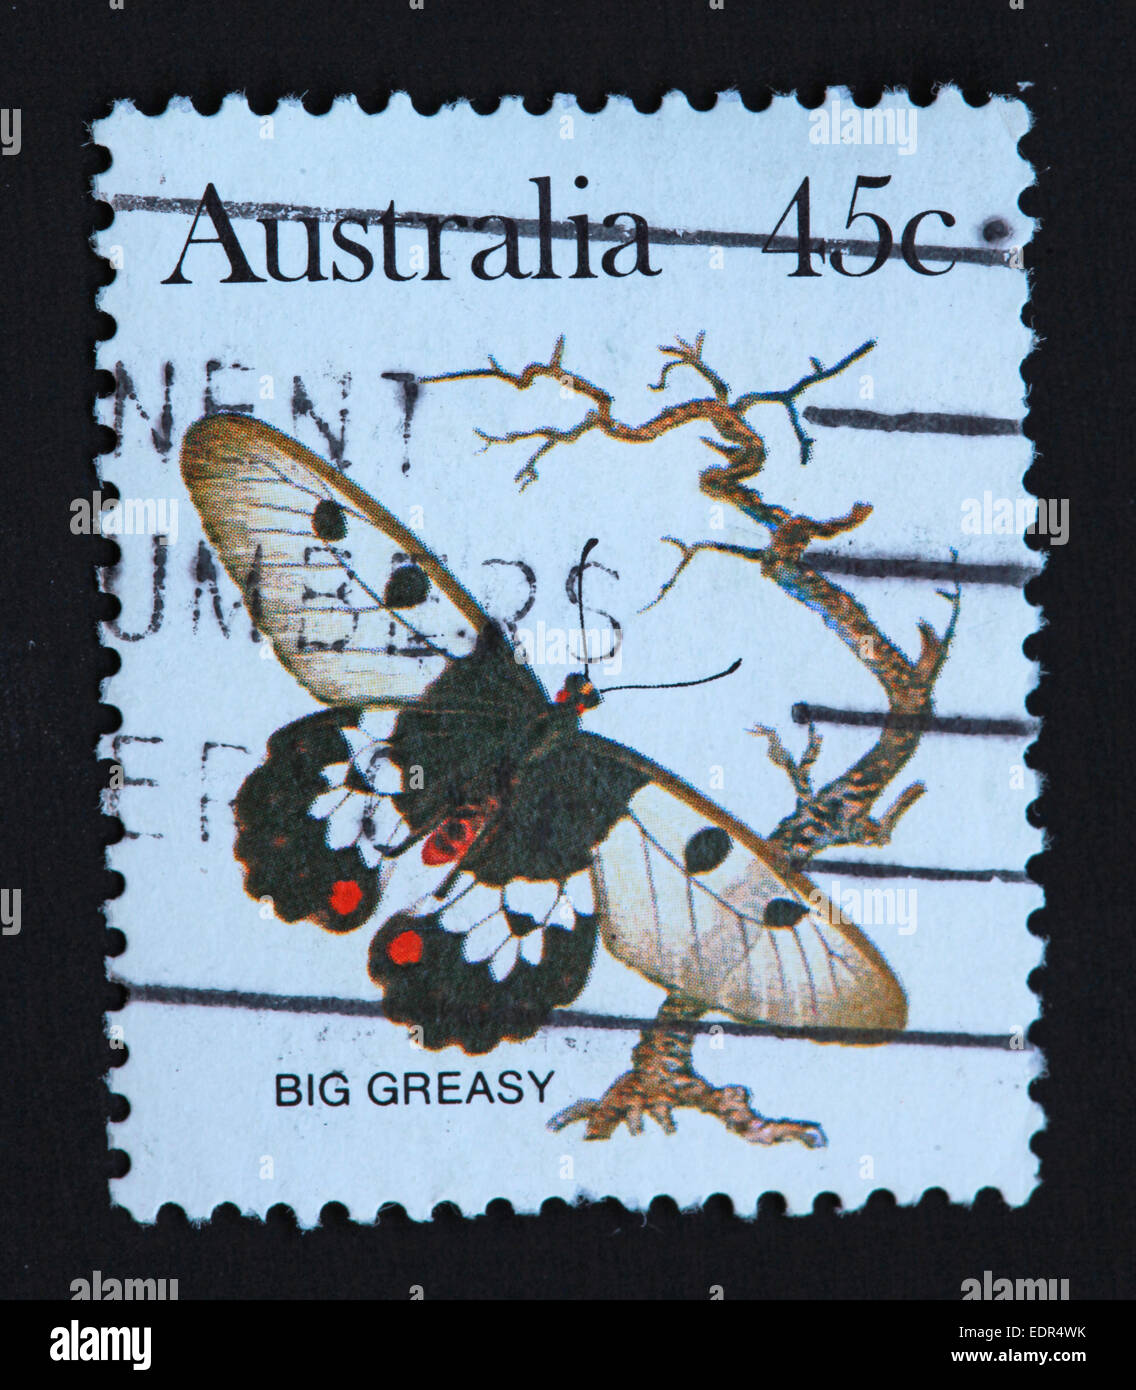 Used and postmarked Australia / Austrailian Stamp Big Greasy 45c - Stock Image